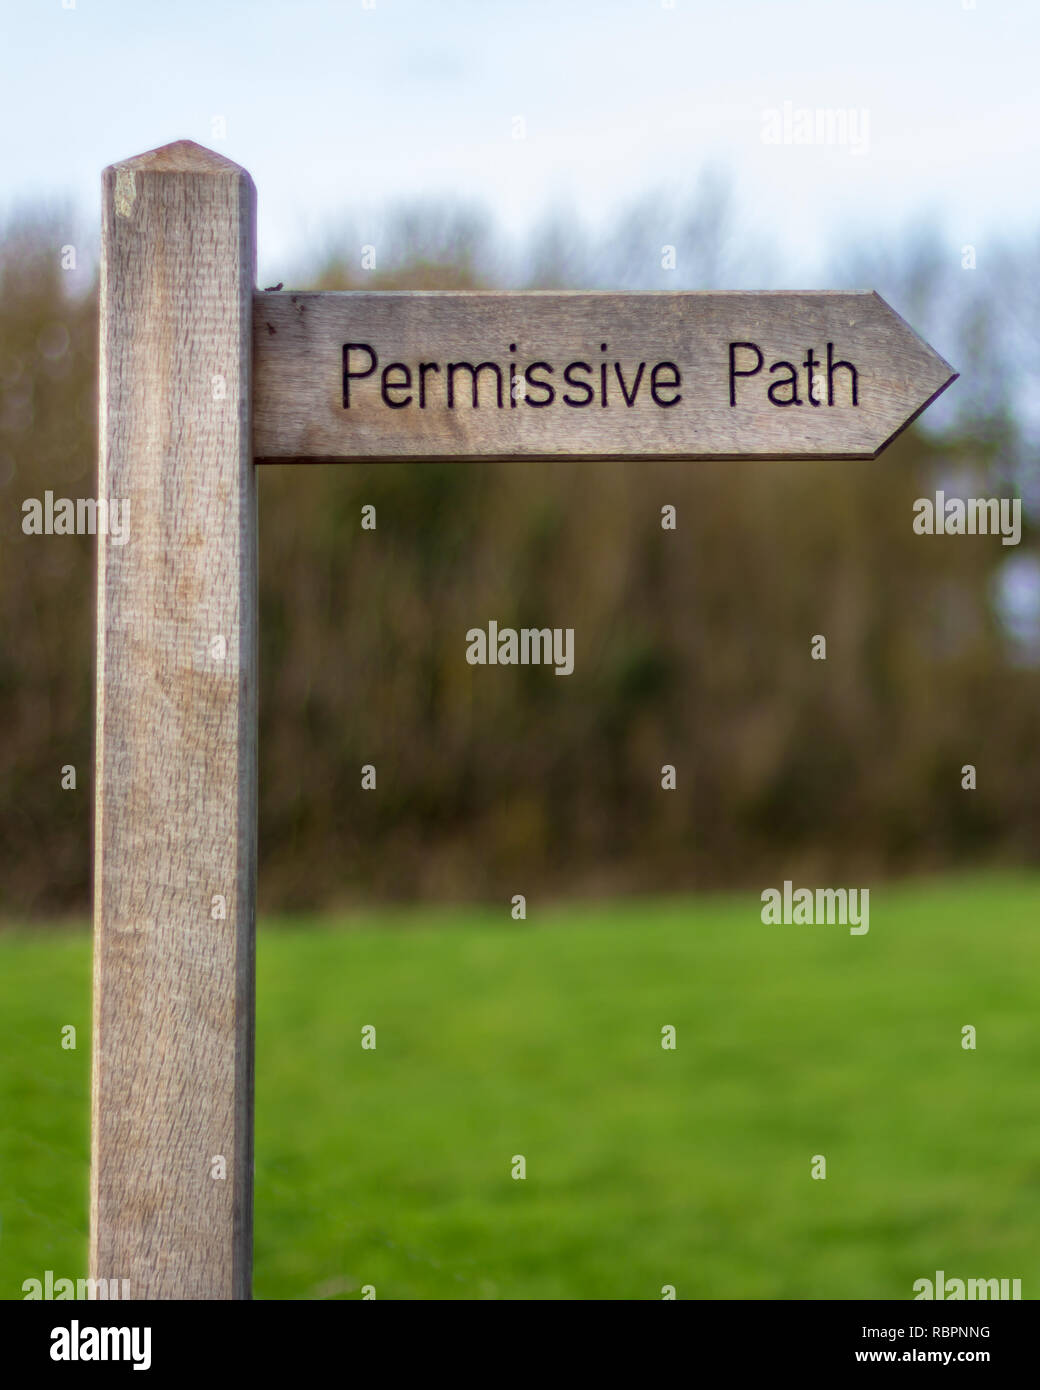 A wood trail sign points the way of the 'Permissive Path' with trees and a meadow in the background - Stock Image